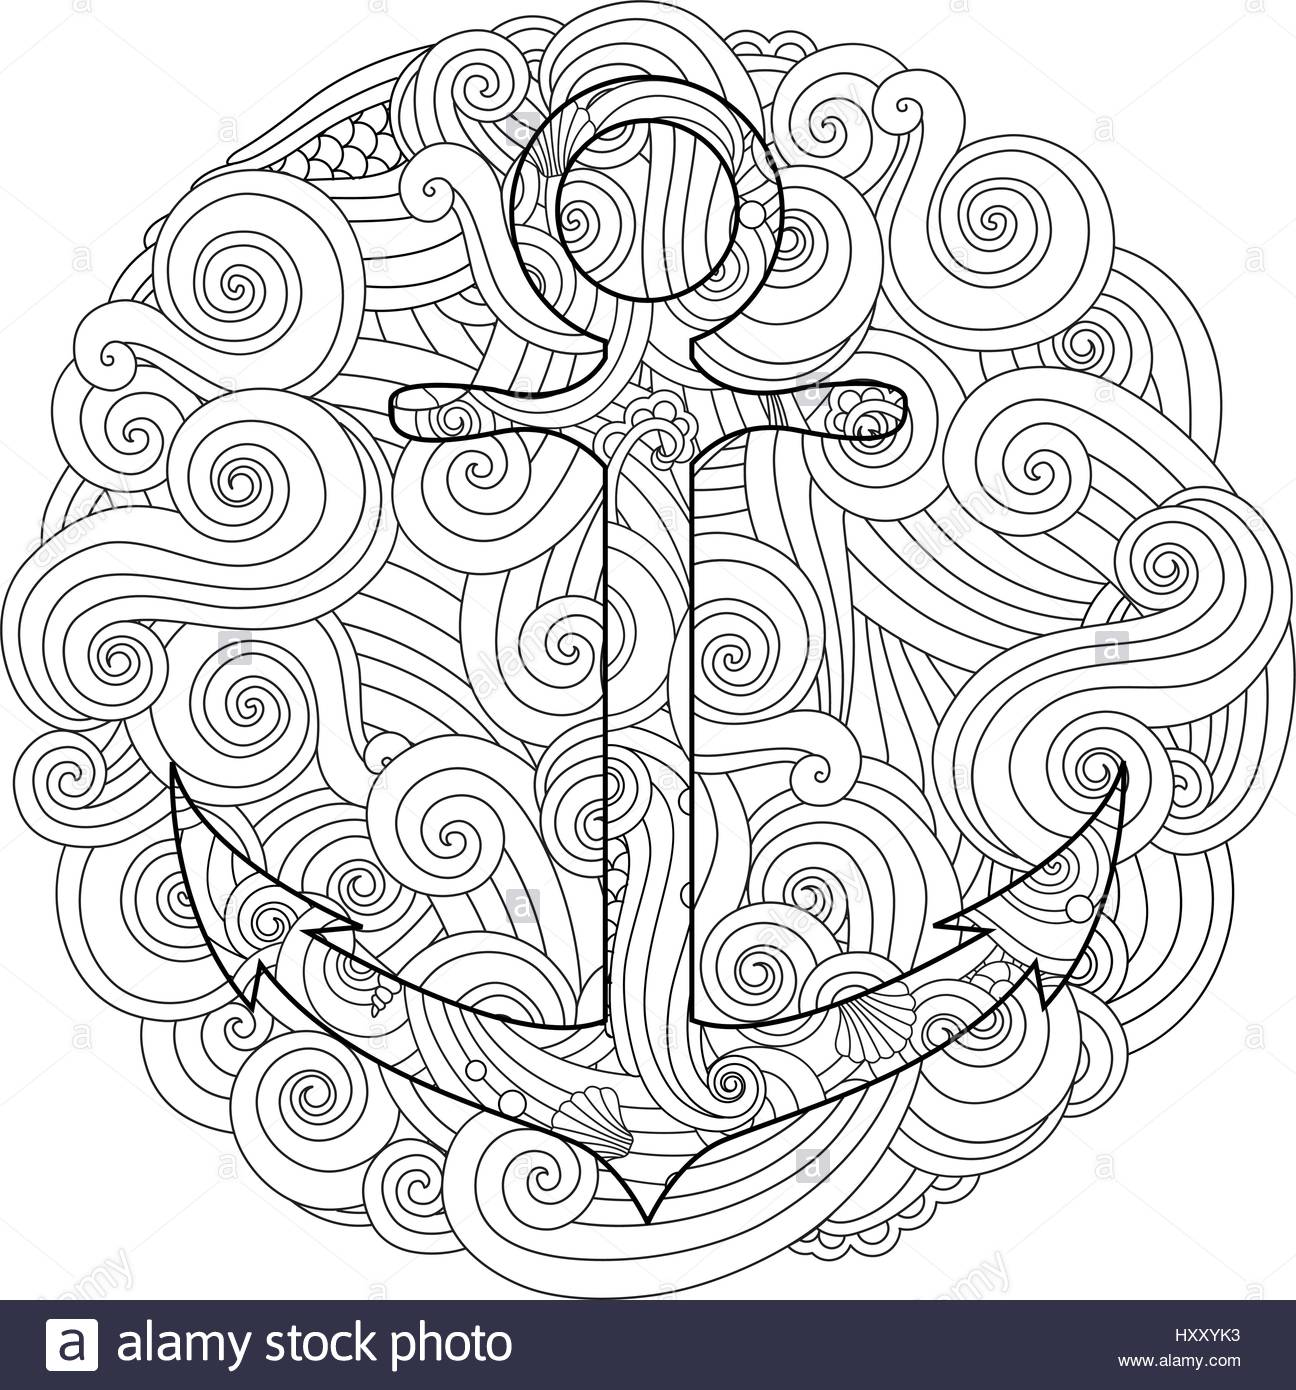 1296x1390 Coloring Page With Anchor In Wave Mandala Zentangle Inspired